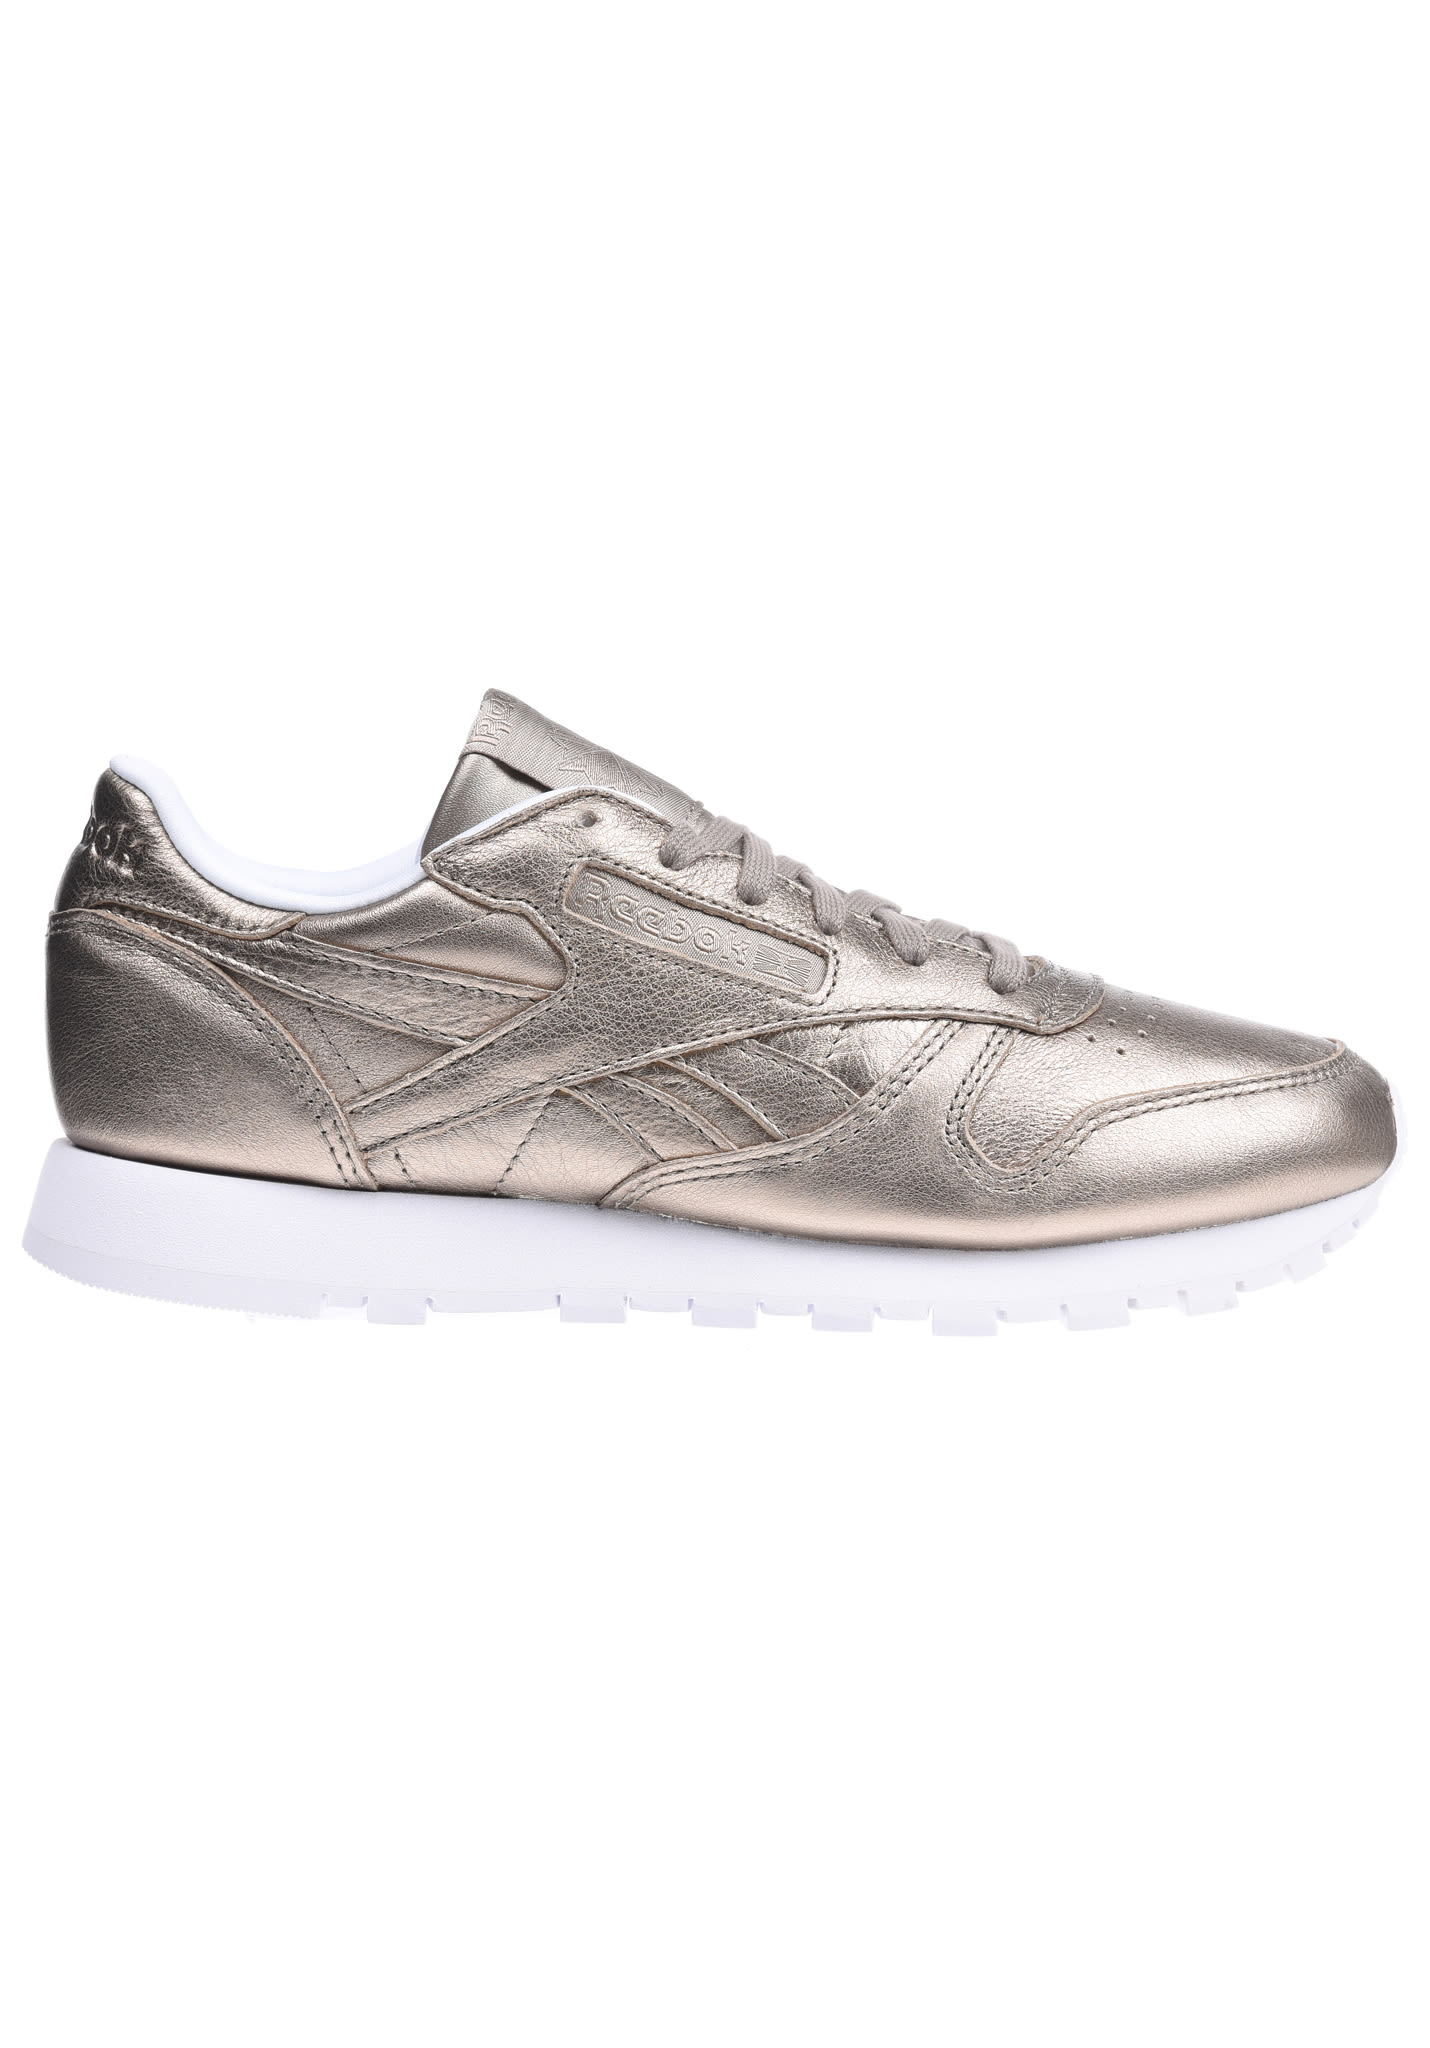 7ad1df5b9b3 Reebok Classic Lthr Melted Meta - Sneakers for Women - Gold - Planet Sports